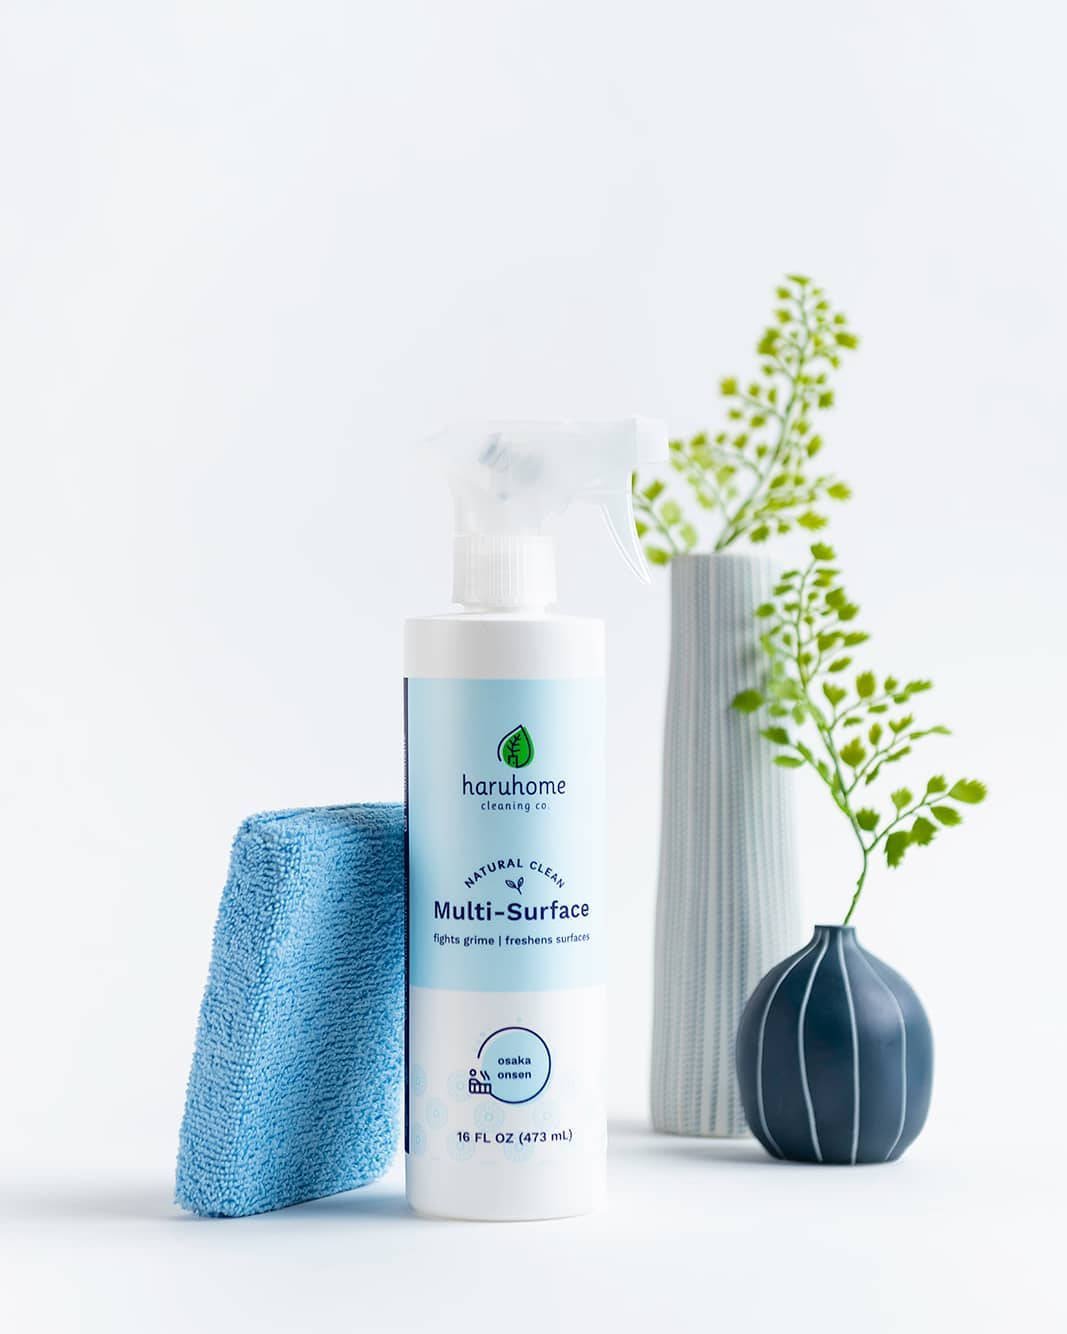 Haruhomes's Multi Surface cleaner